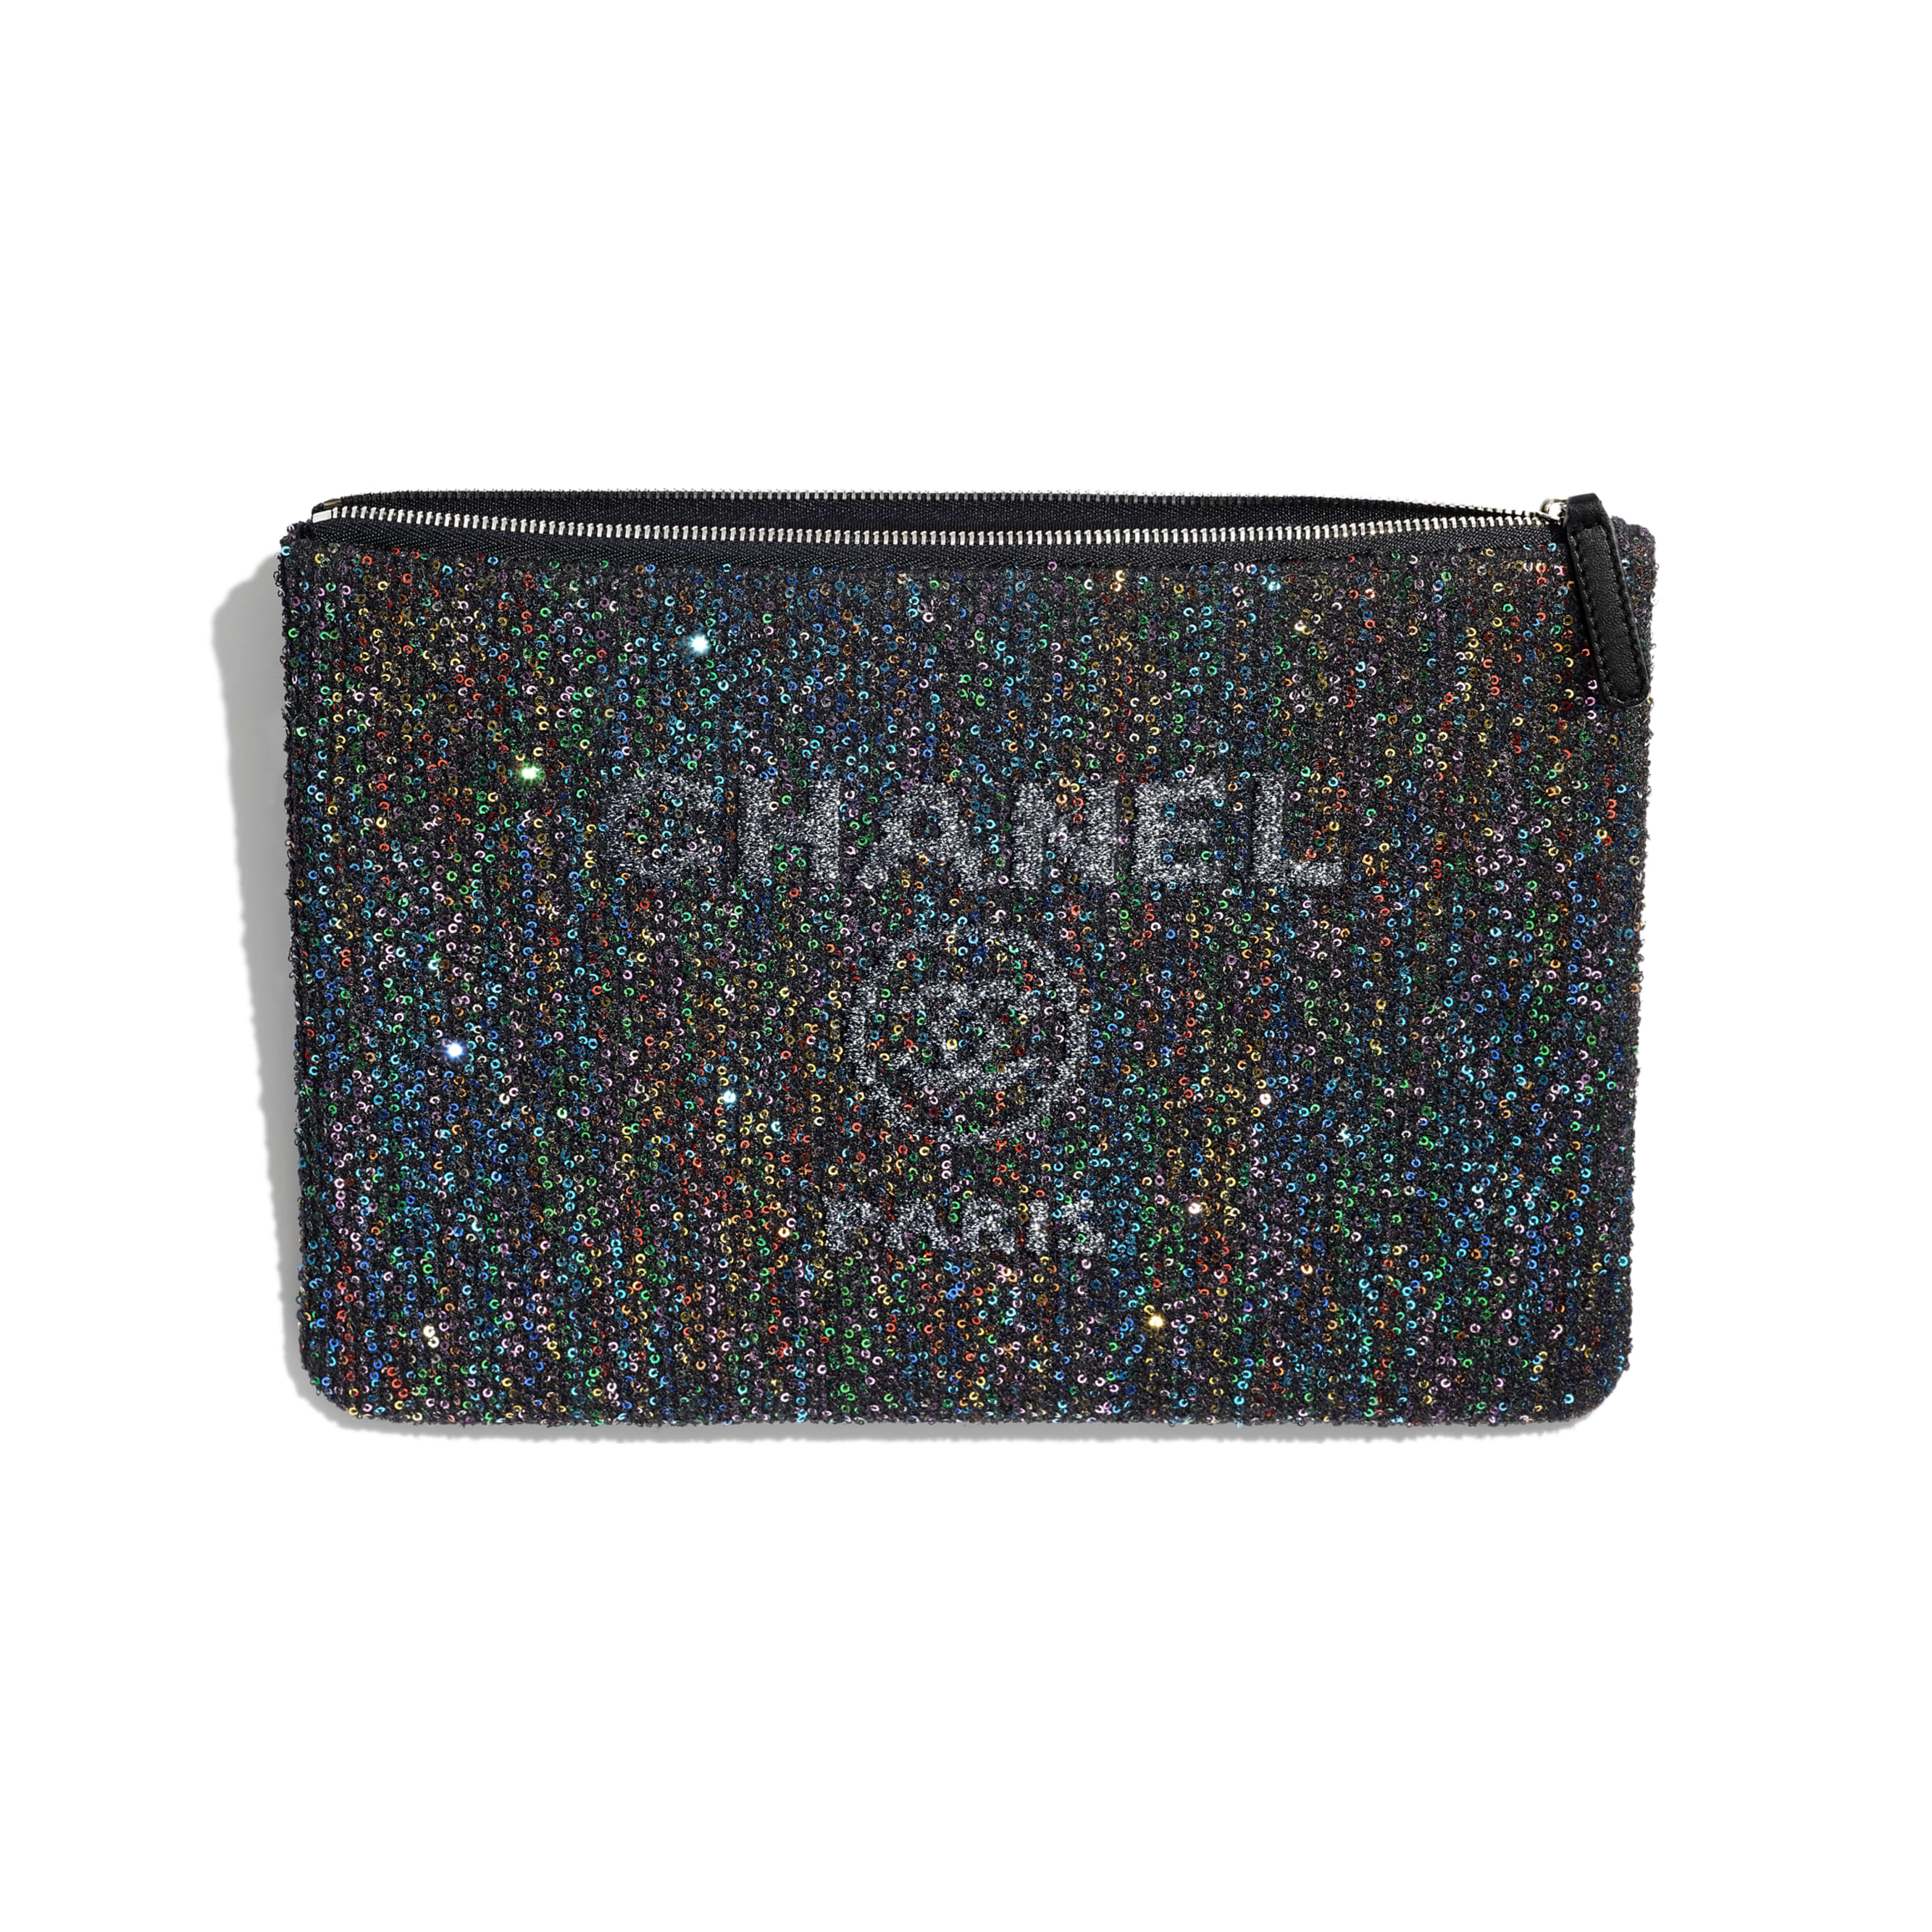 Pouch - Black - Viscose, Calfskin, Sequins & Silver-Tone Metal - CHANEL - Other view - see standard sized version